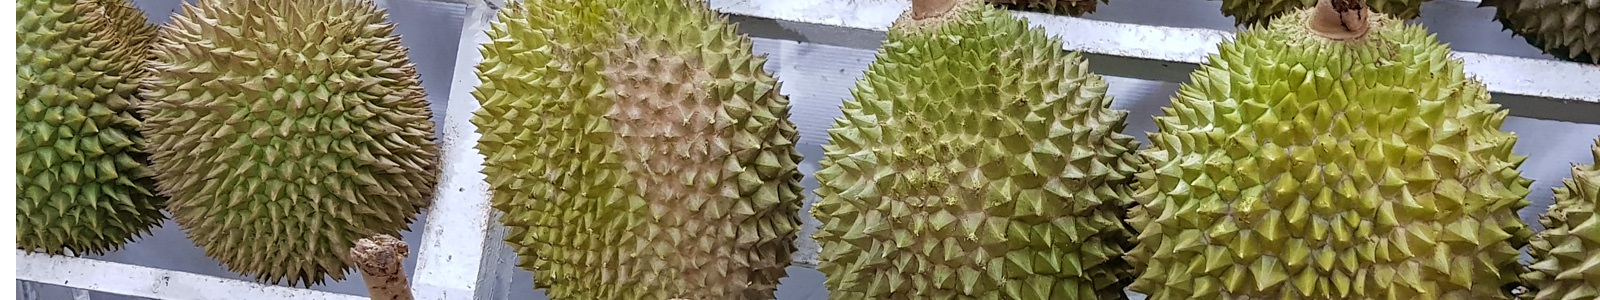 Musang King Durian Flavor Ice Cream is a Big Hit in India!